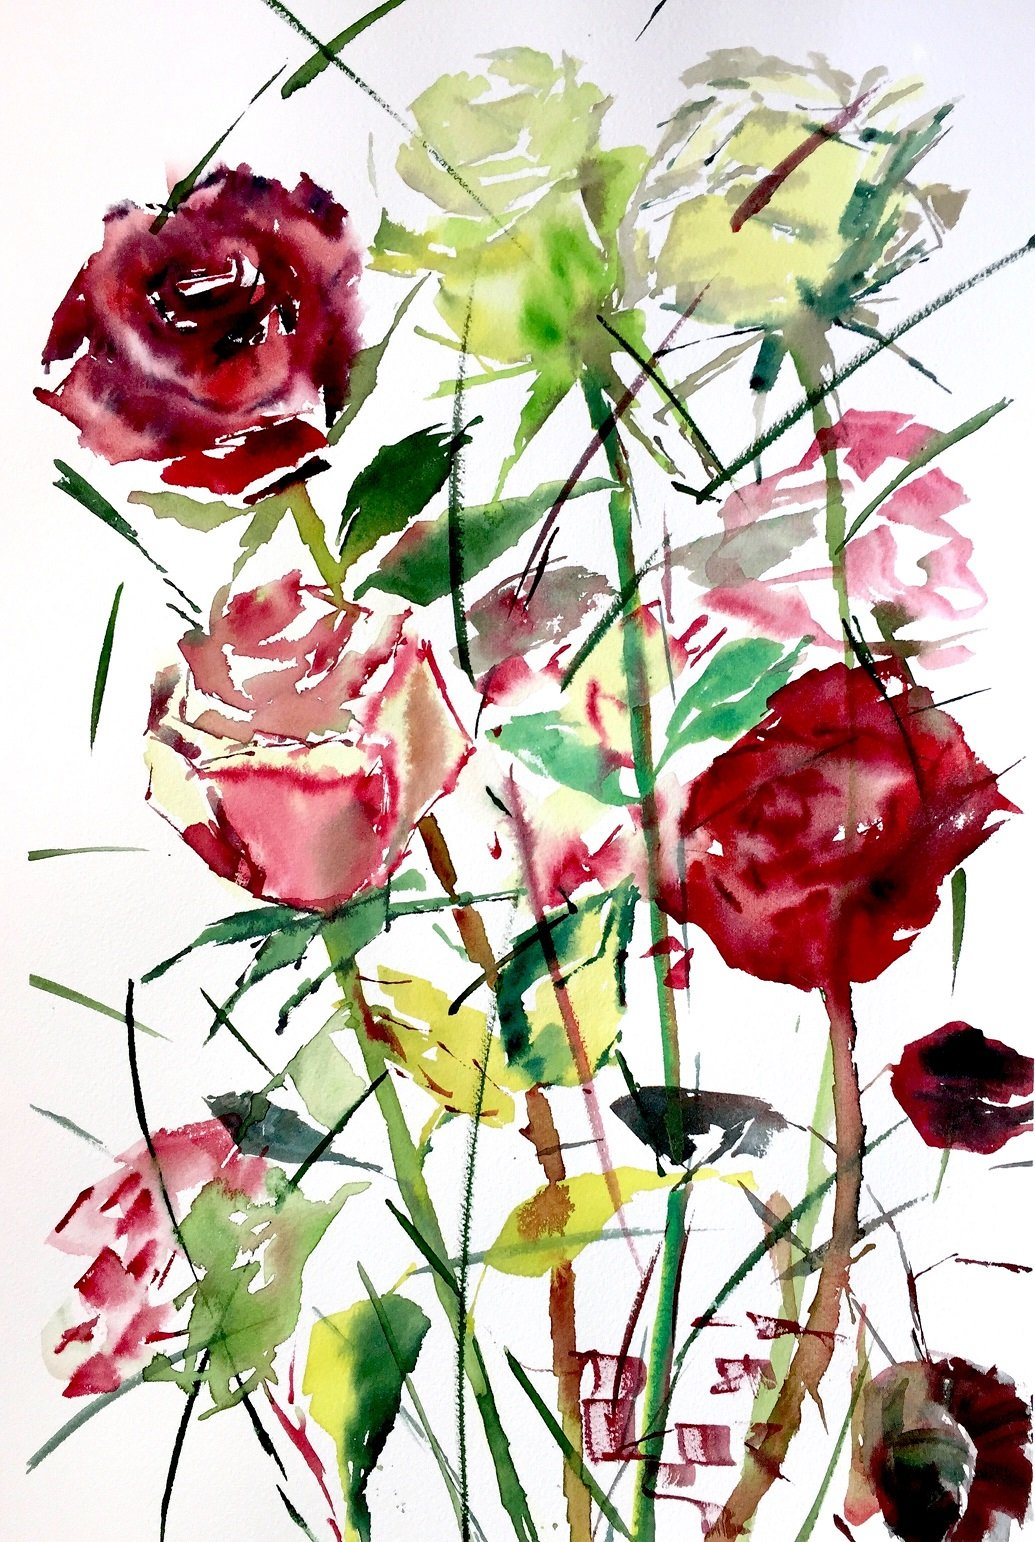 Winter Roses 4<br /> Water colour on 300 gms Arches<br /> 56 cm x 31 cm